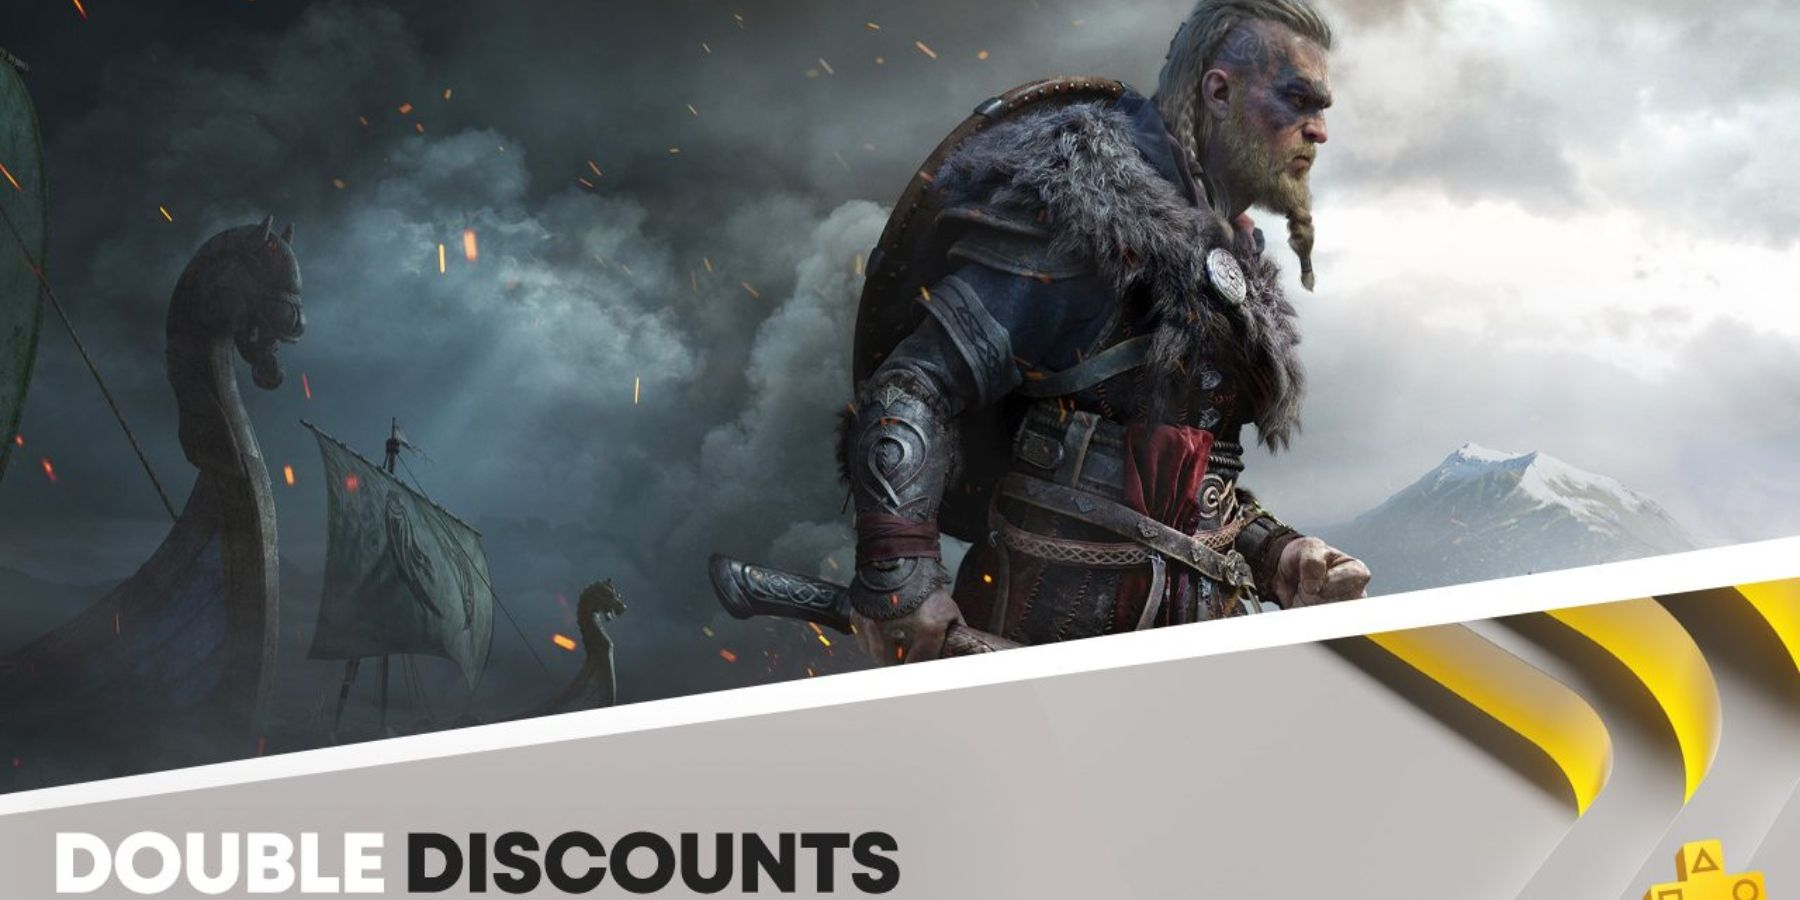 PlayStation Store's Double Discounts Sale 2021 Offers 500+ PS5 and PS4 Games with Massive Savings